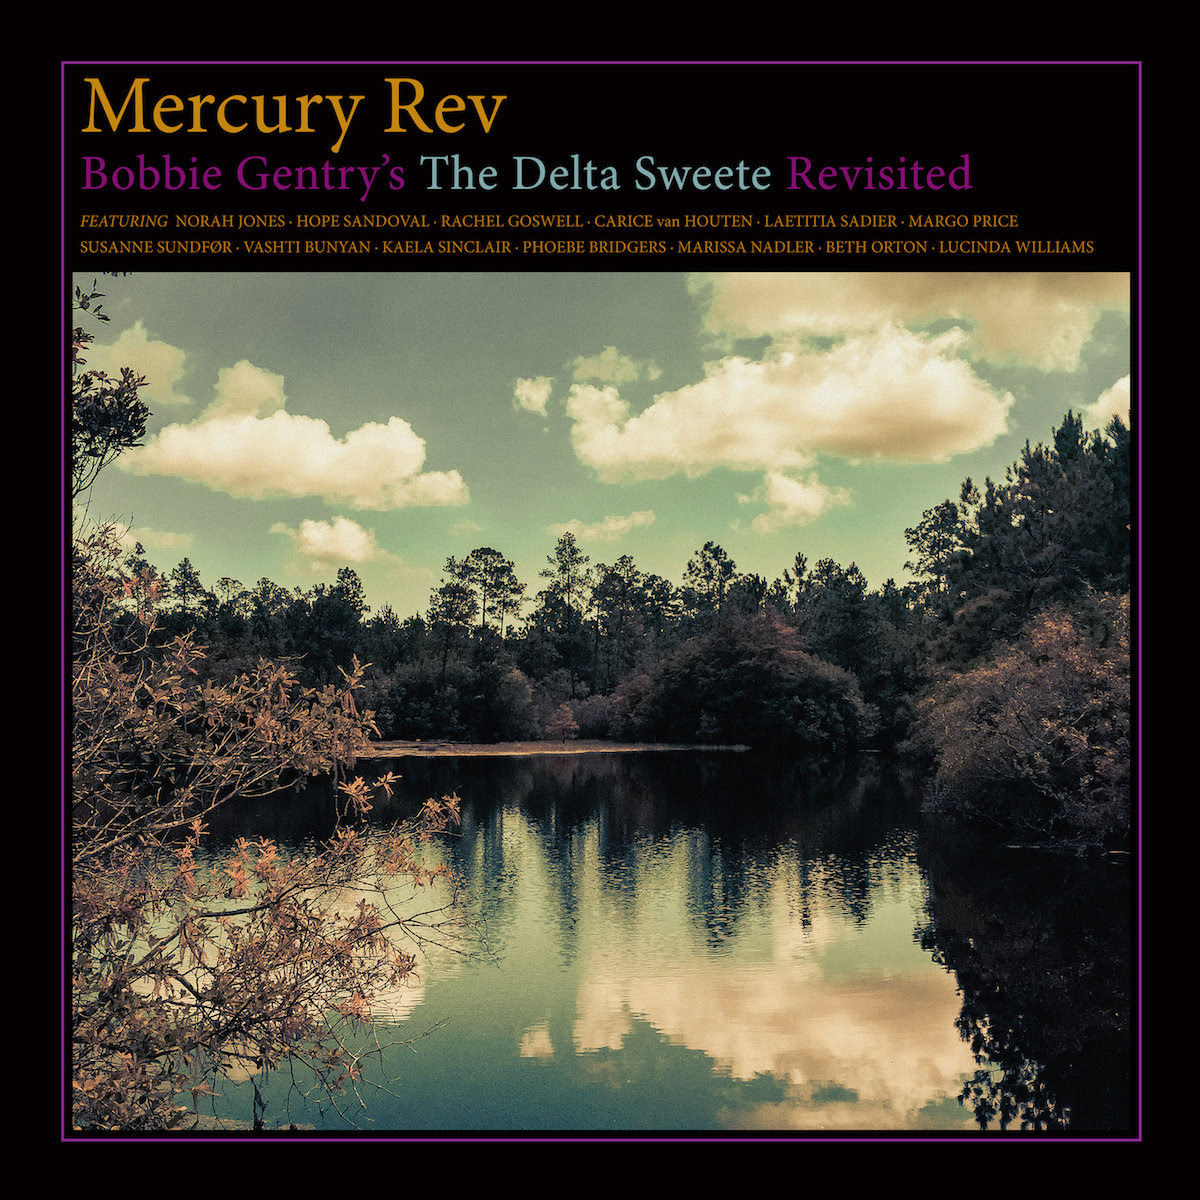 Bobbie Gentry's The Delta Sweete Revisited album cover artwork